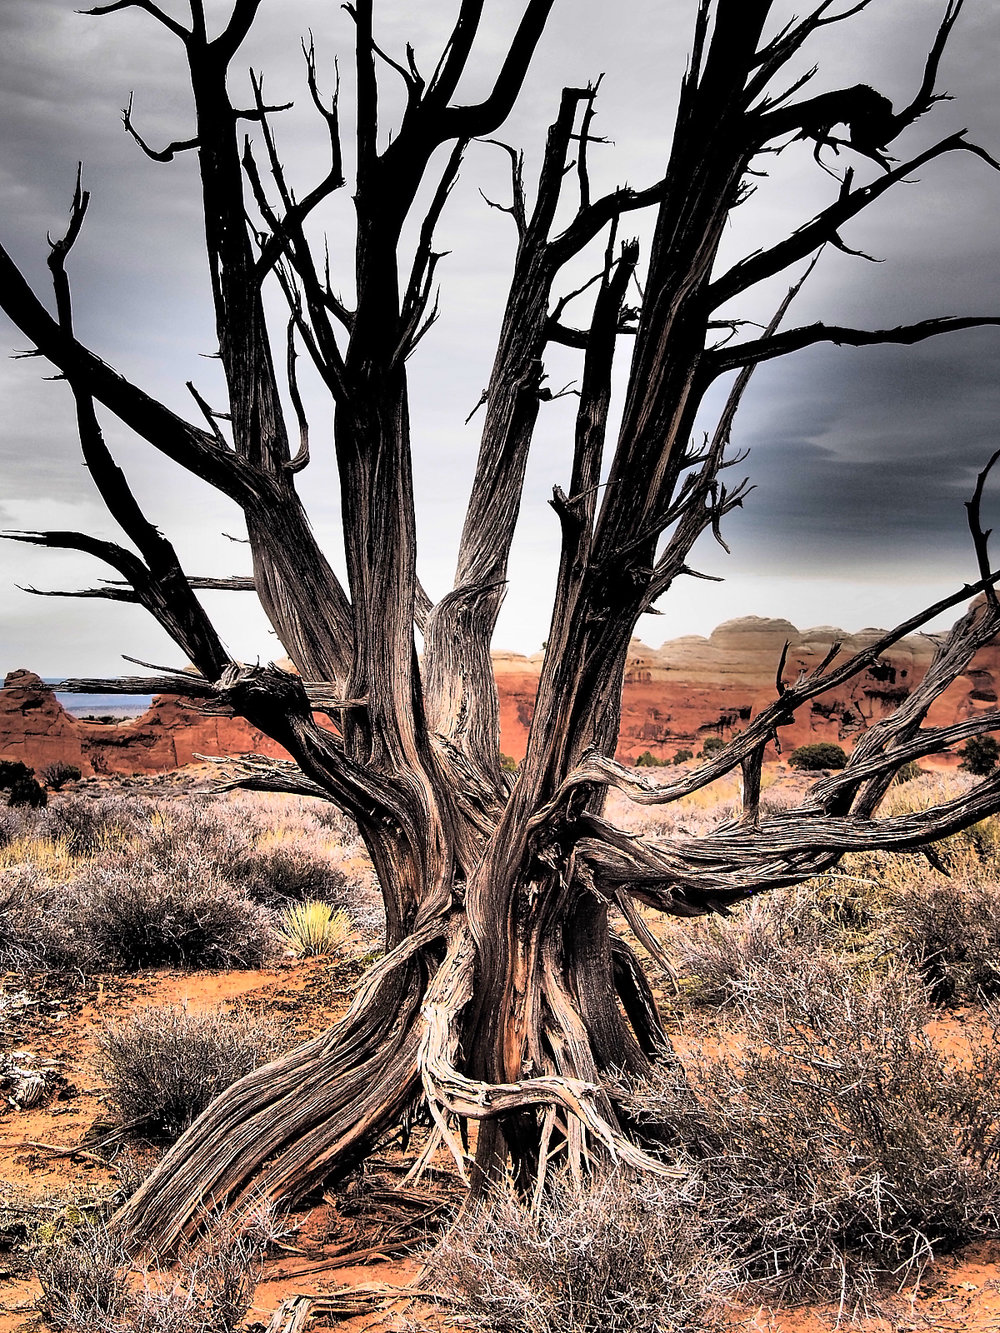 Juniper Tree in Arches National Park